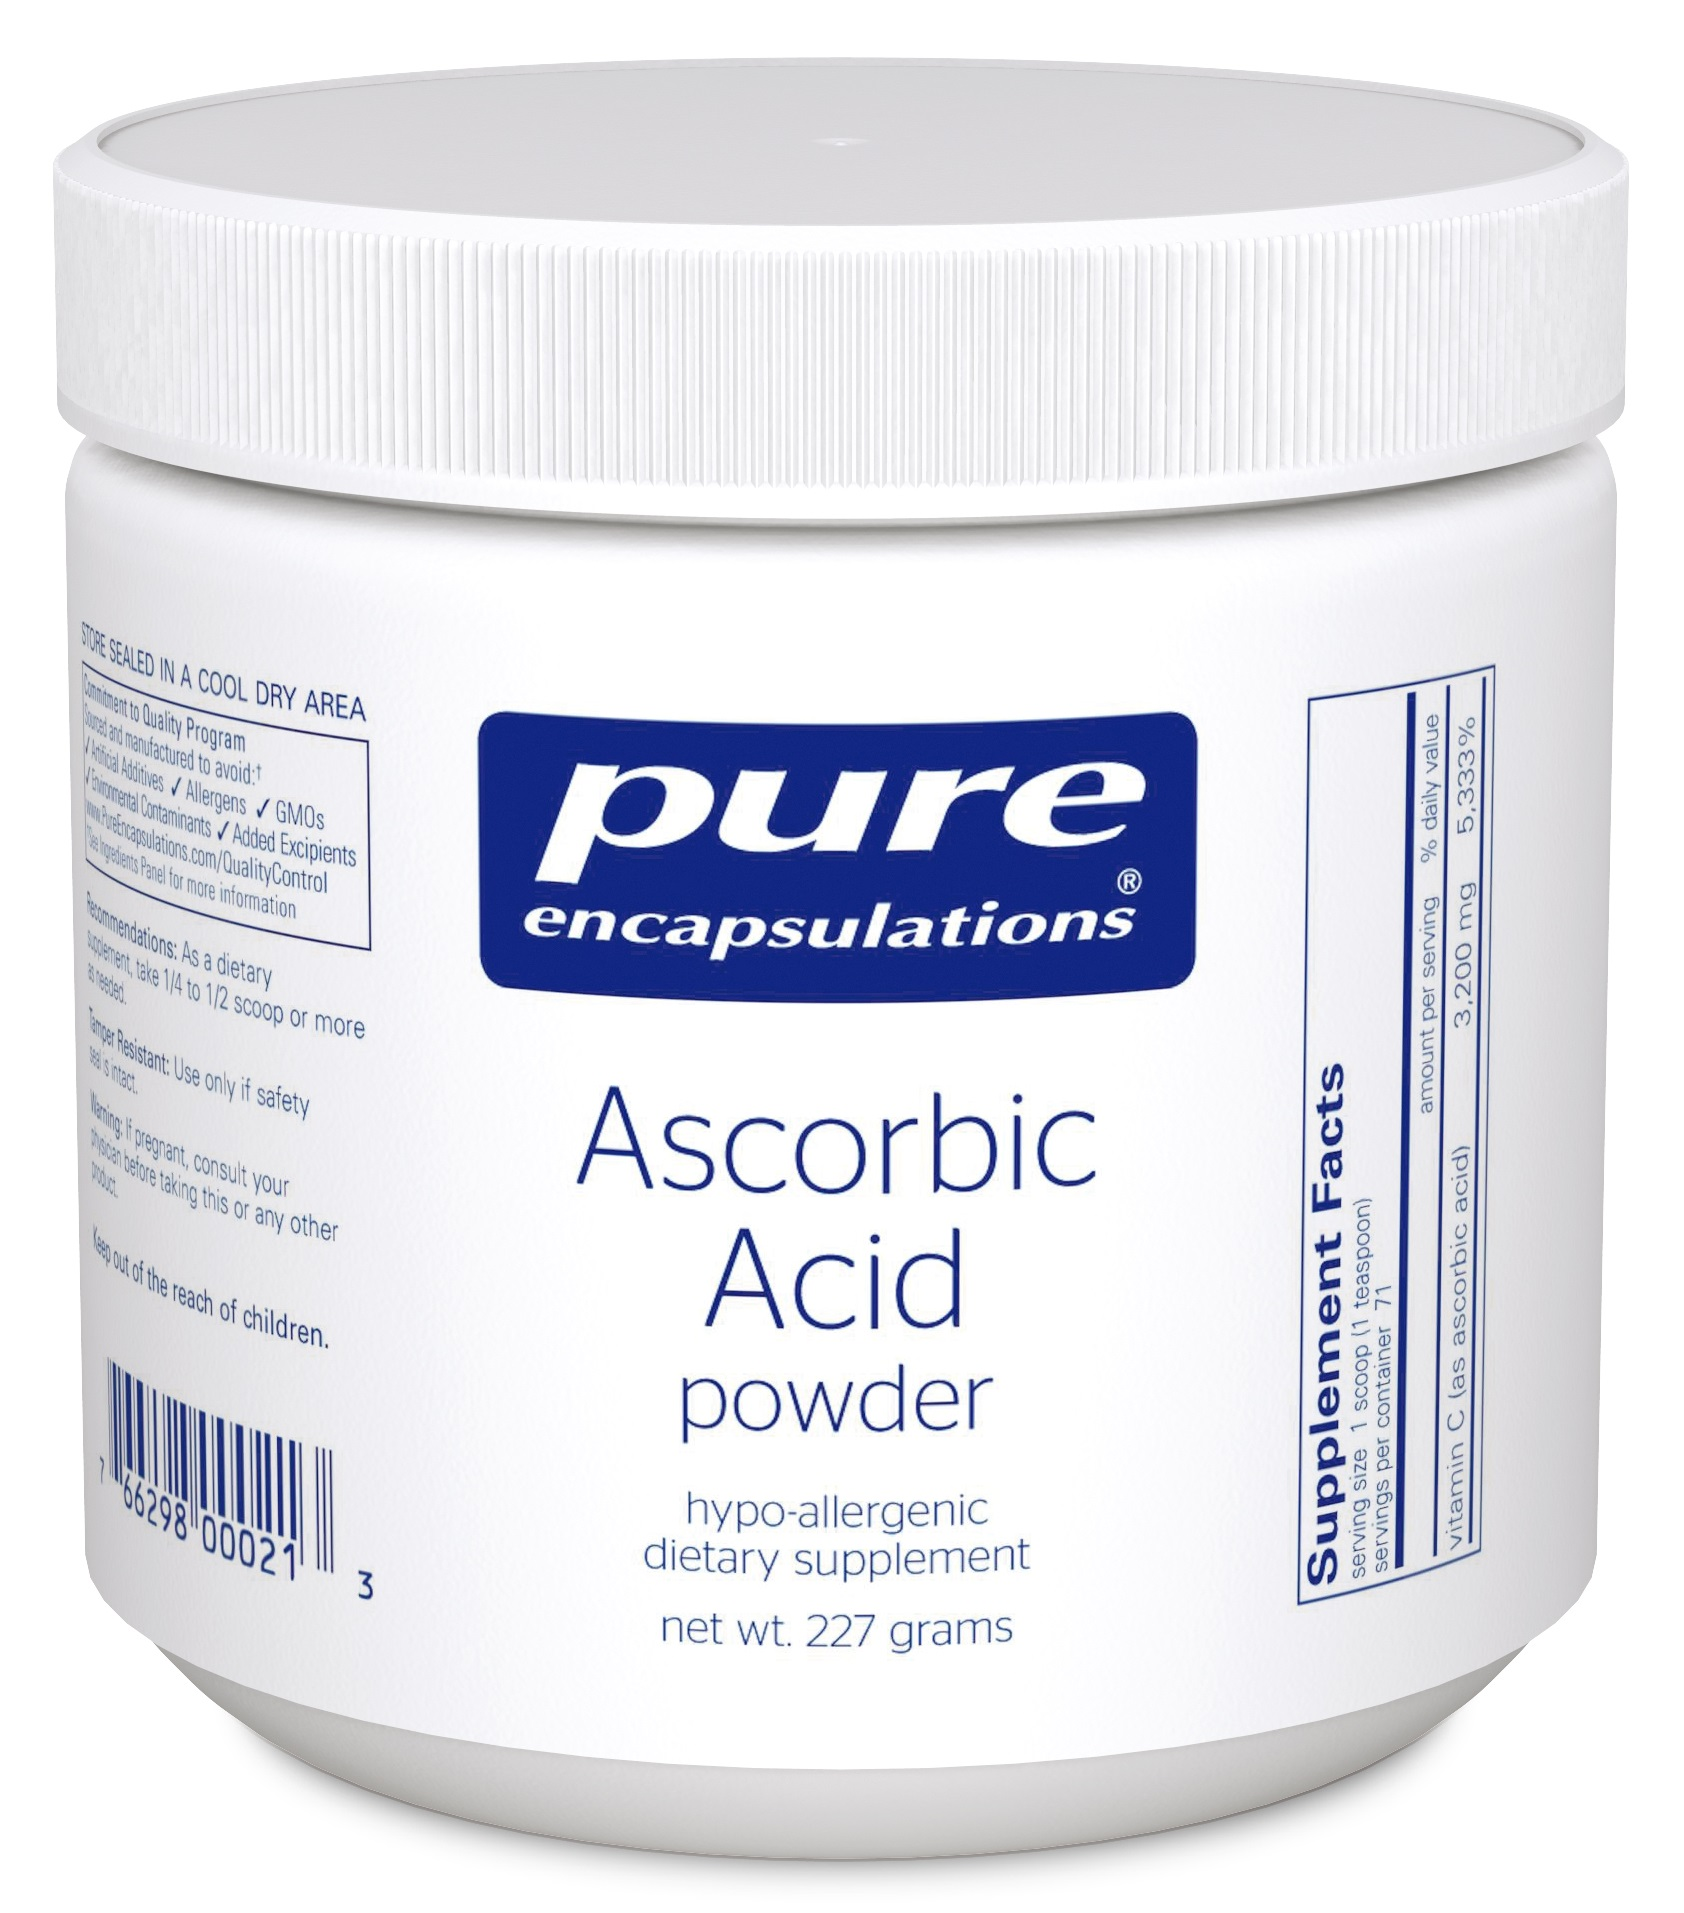 Pure Encapsulations Ascorbic Acid powder